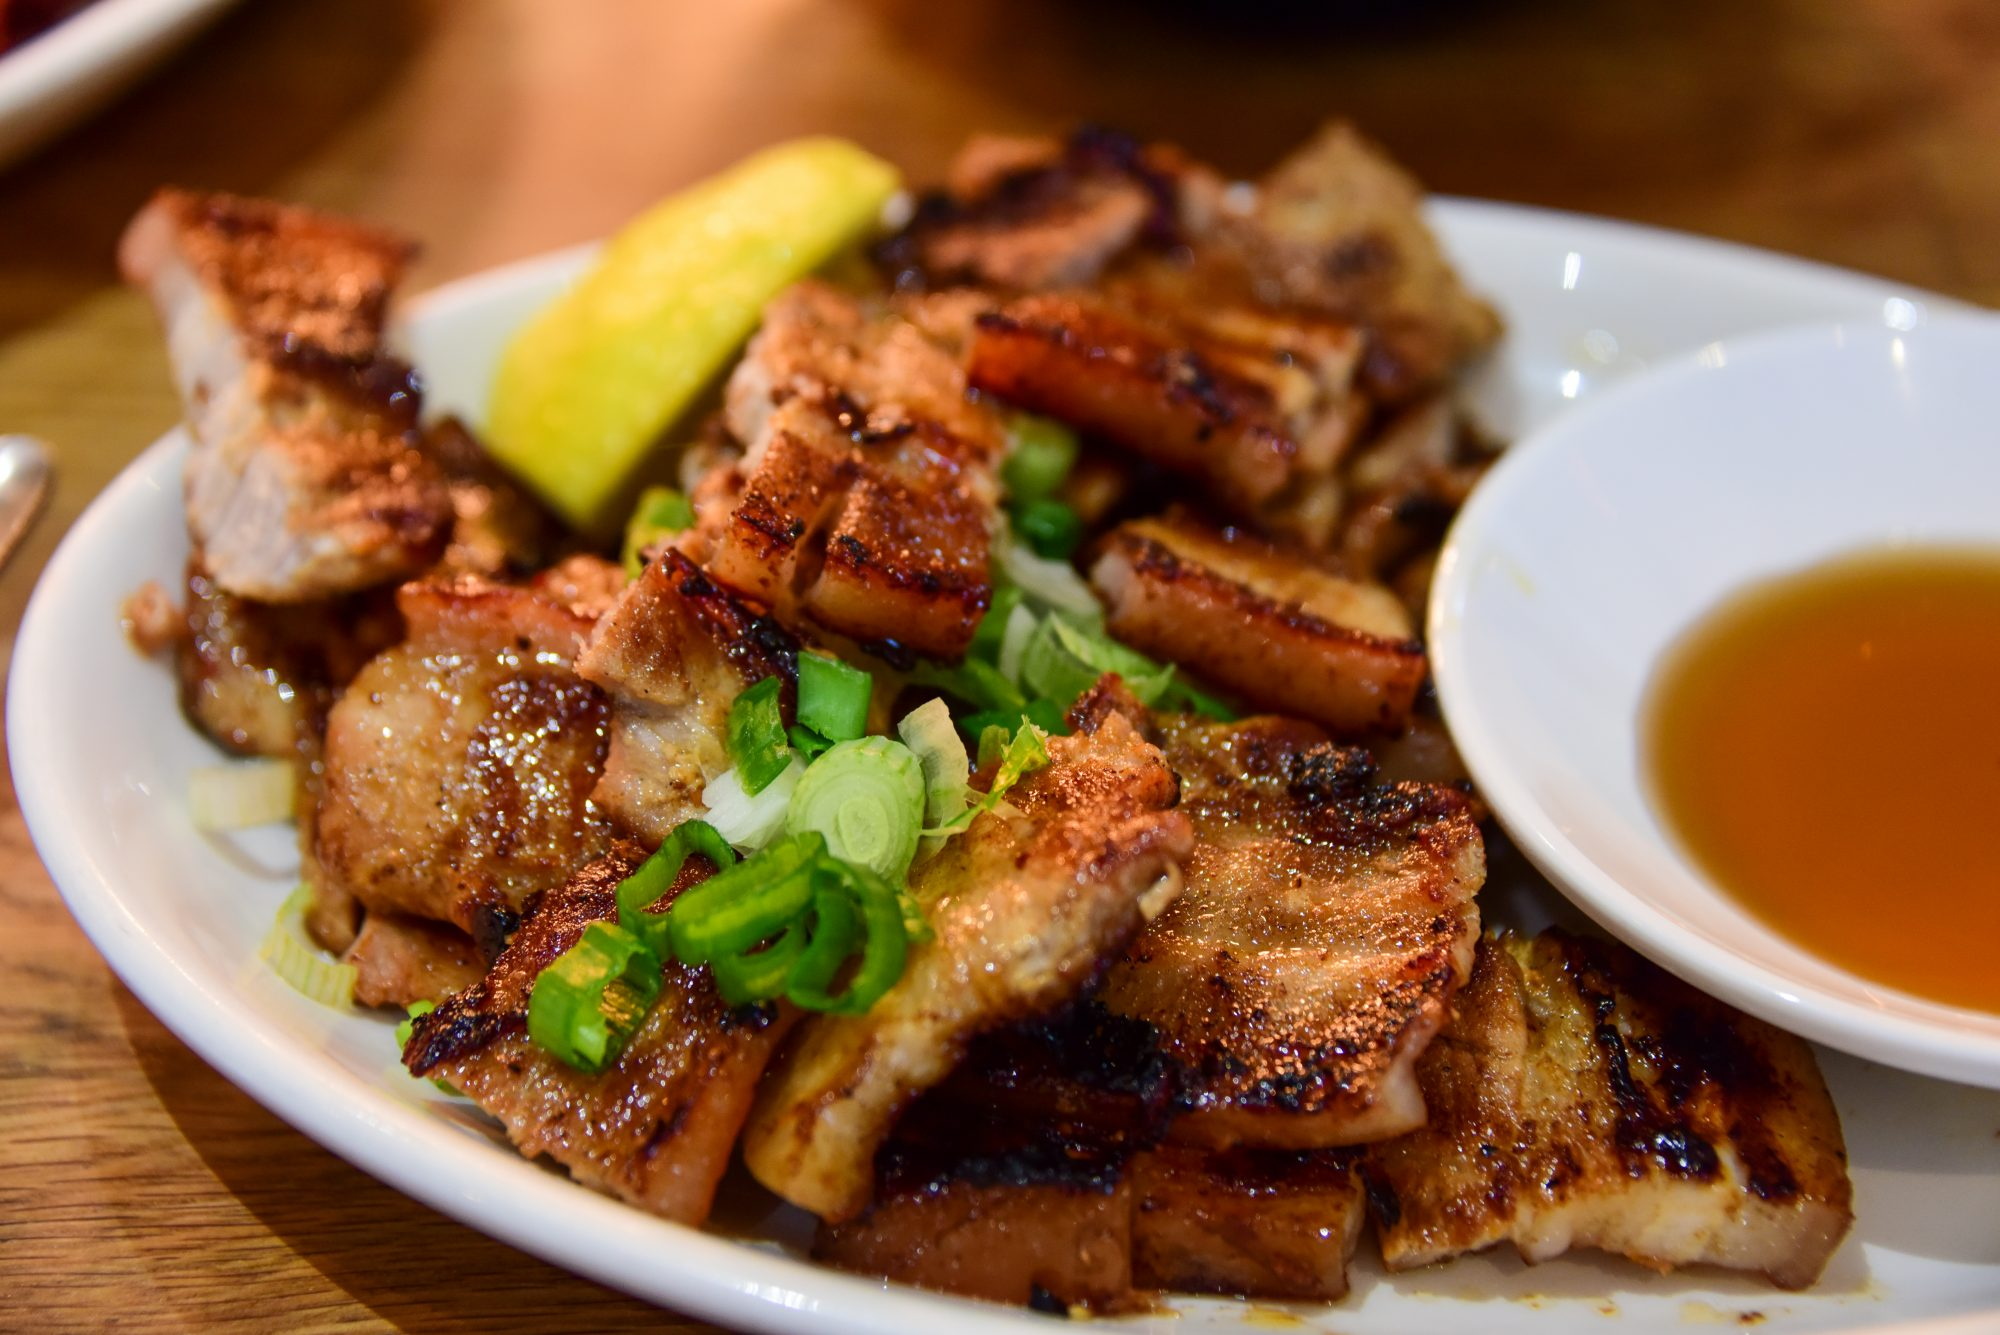 Inihaw Na Liempo, Filipino marinated pork belly served with vinegar